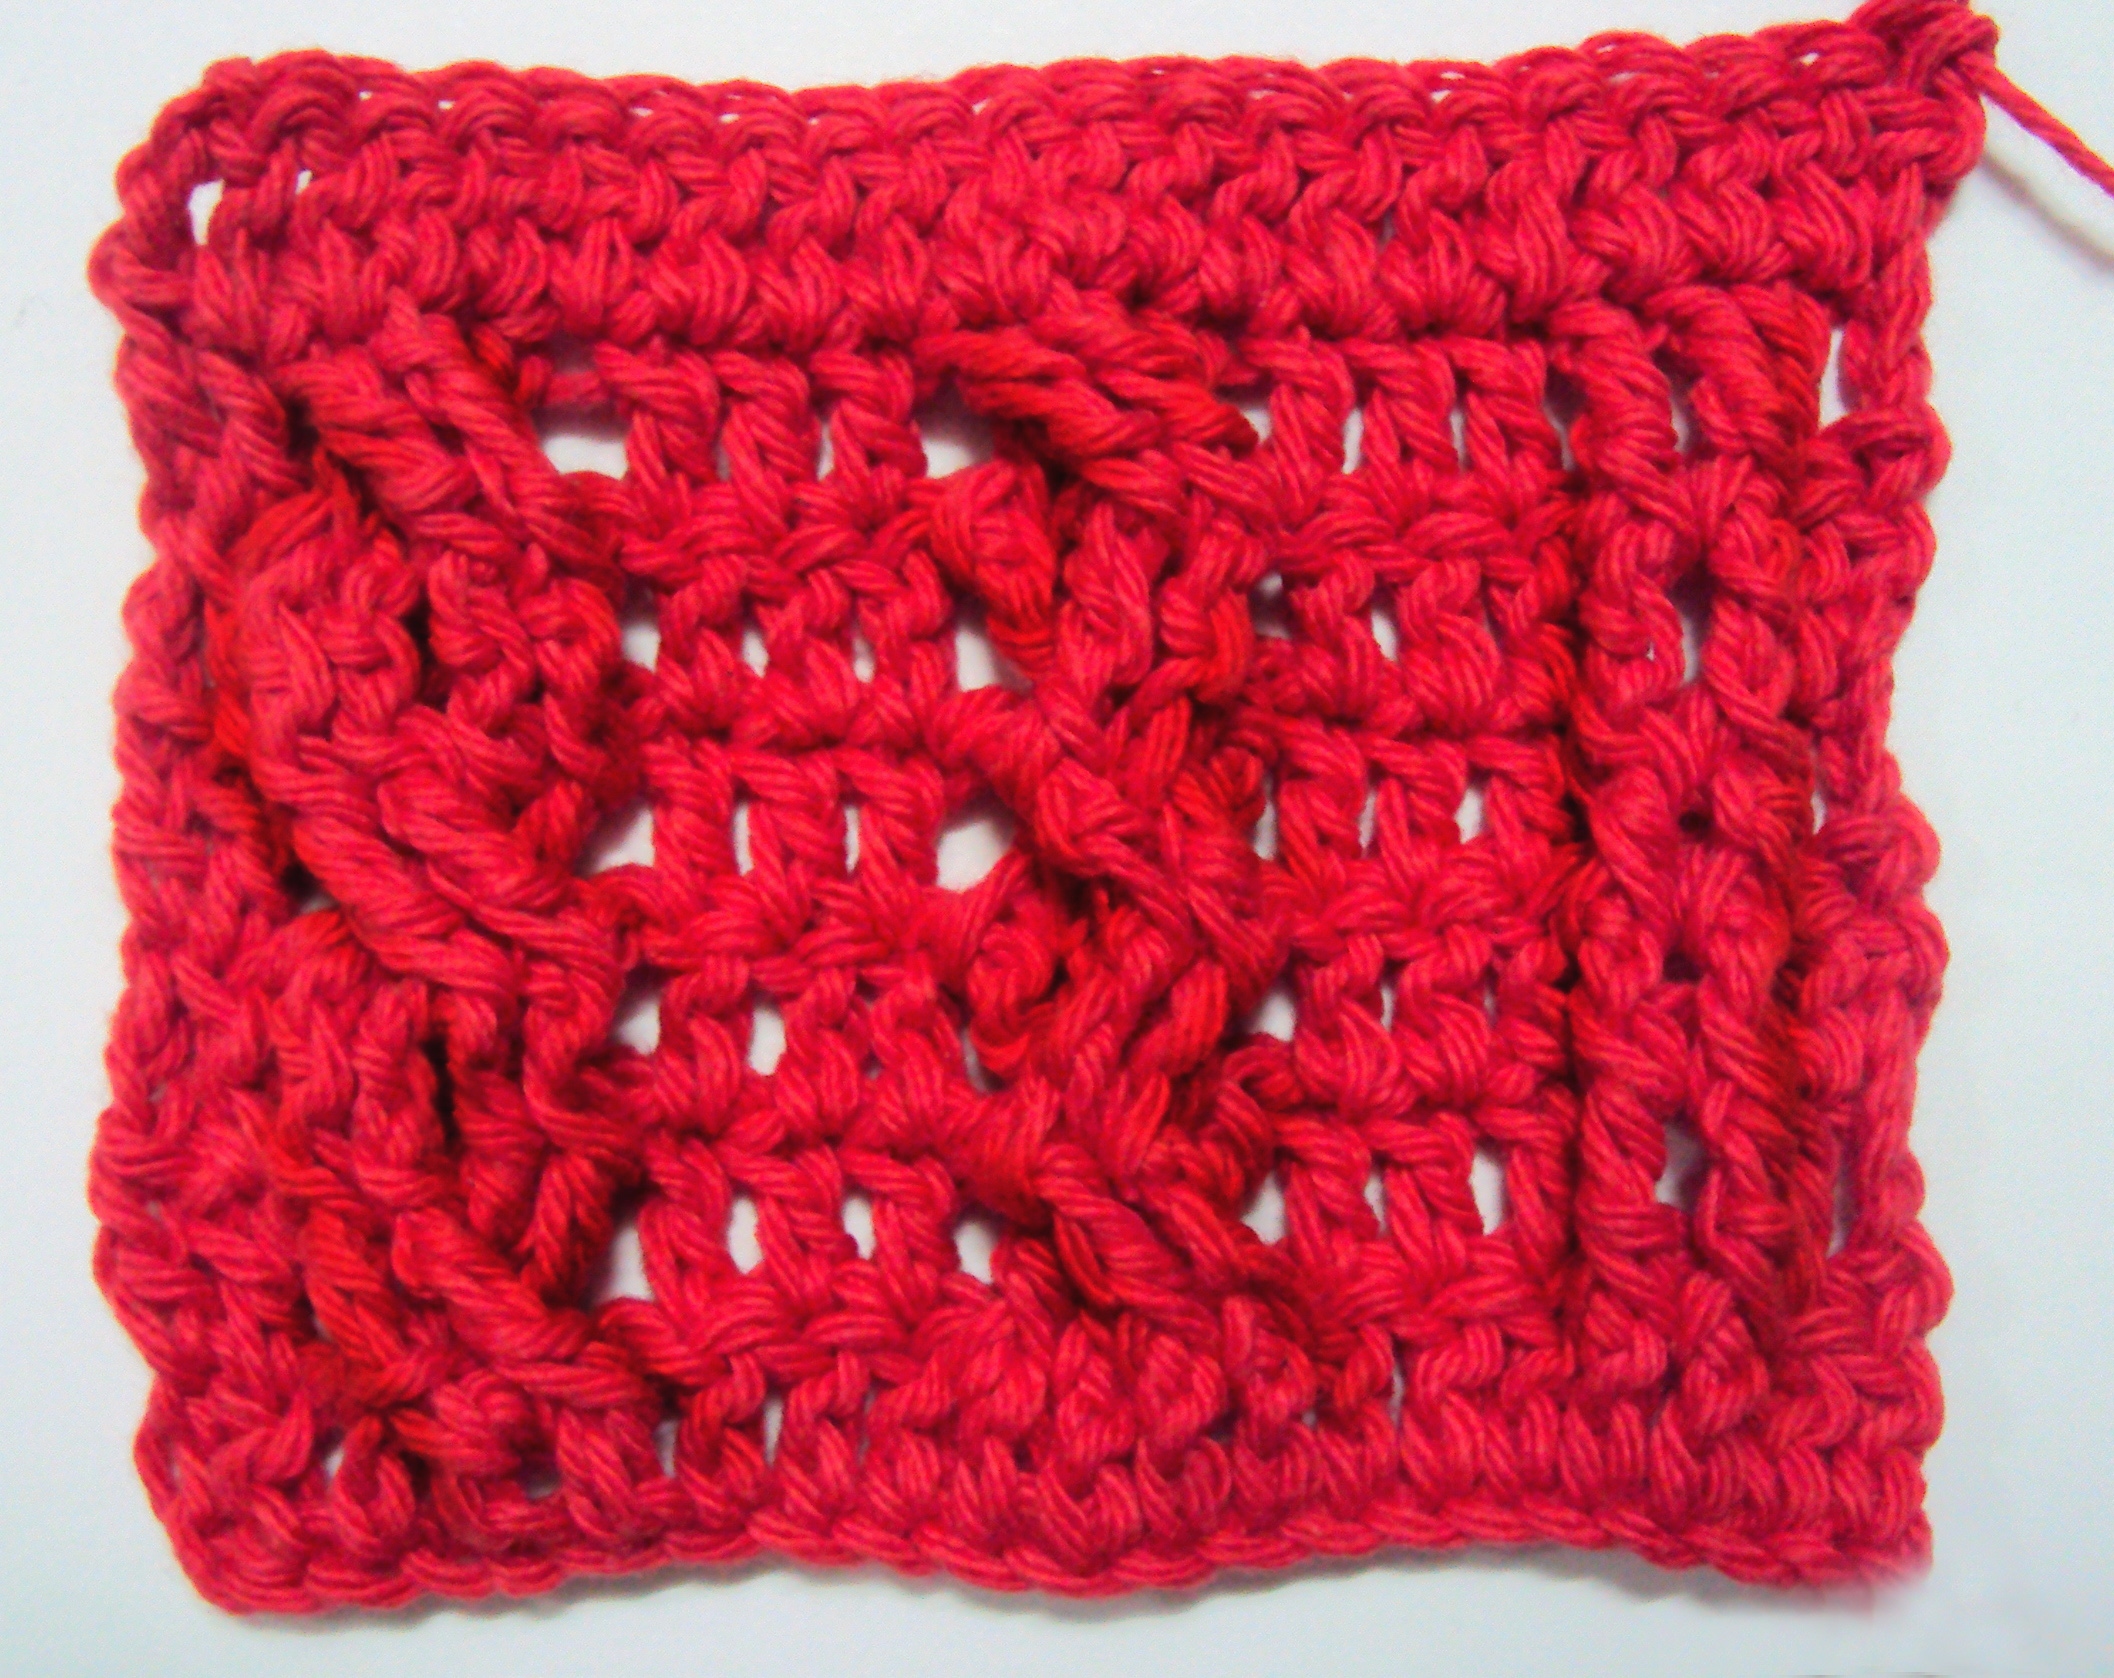 Crochet Videos : Crochet Spot ? Blog Archive ? How to Crochet: Cable Stitches ...